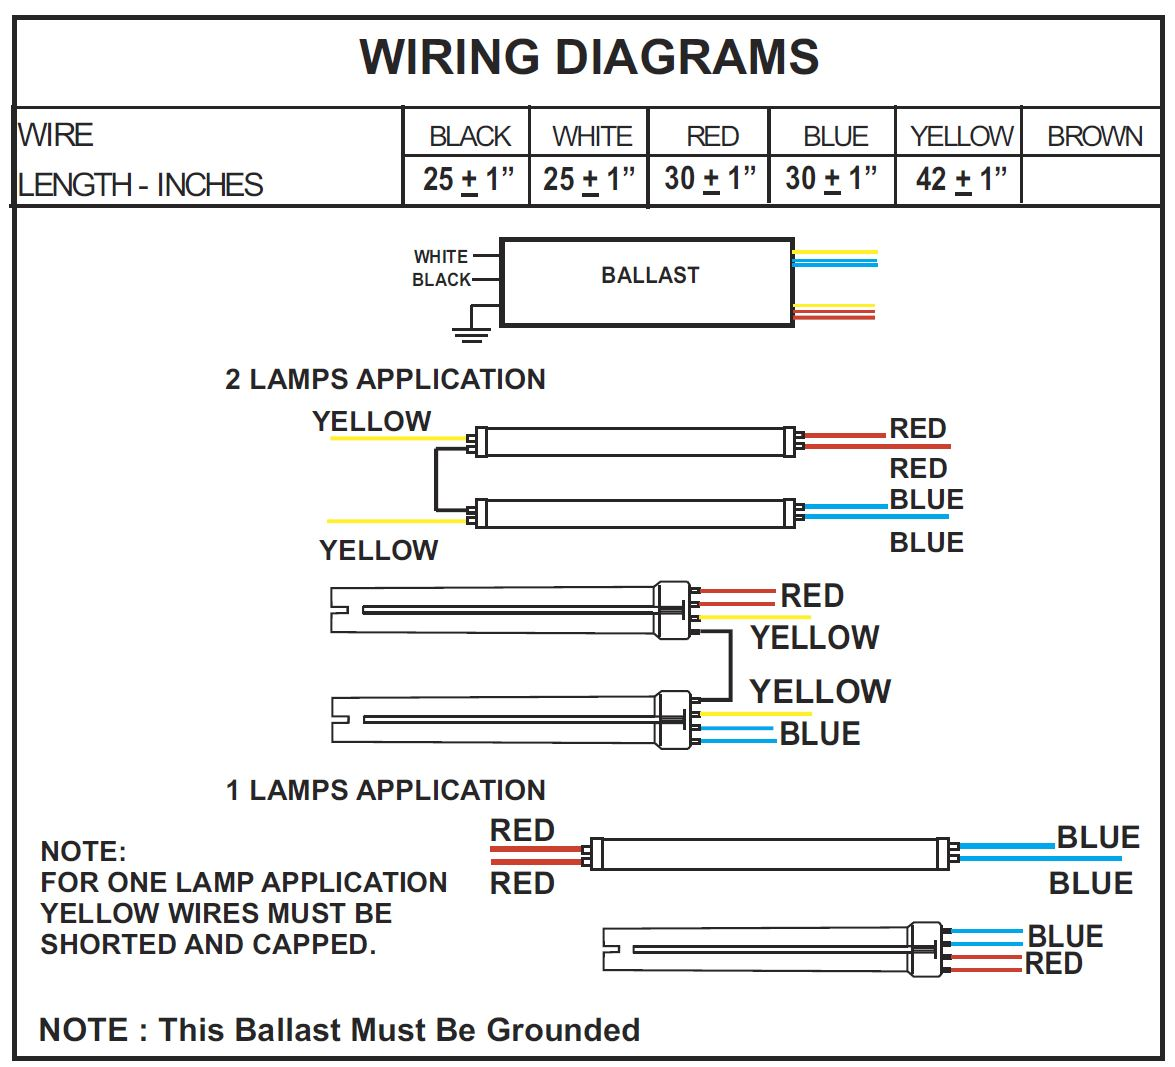 277 Volt Ballast Wiring Diagram Libraries 480 Vac Free Download Schematic T8 Third Levelt5 Ballasts Diagrams